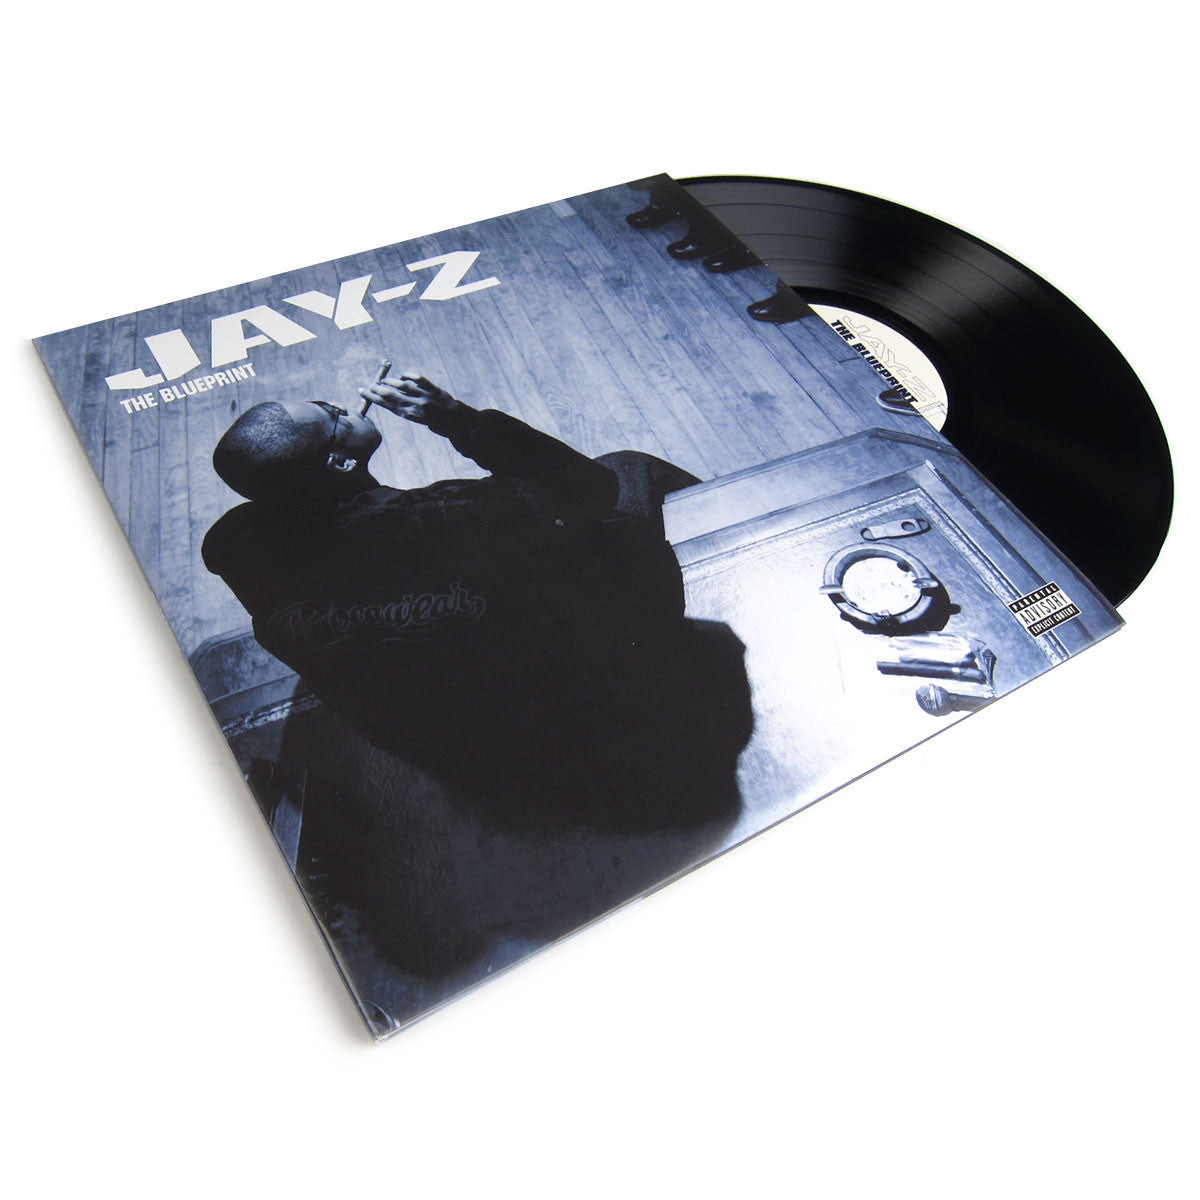 Jay z the blueprint vinyl 2lp turntablelab jay z the blueprint vinyl 2lp malvernweather